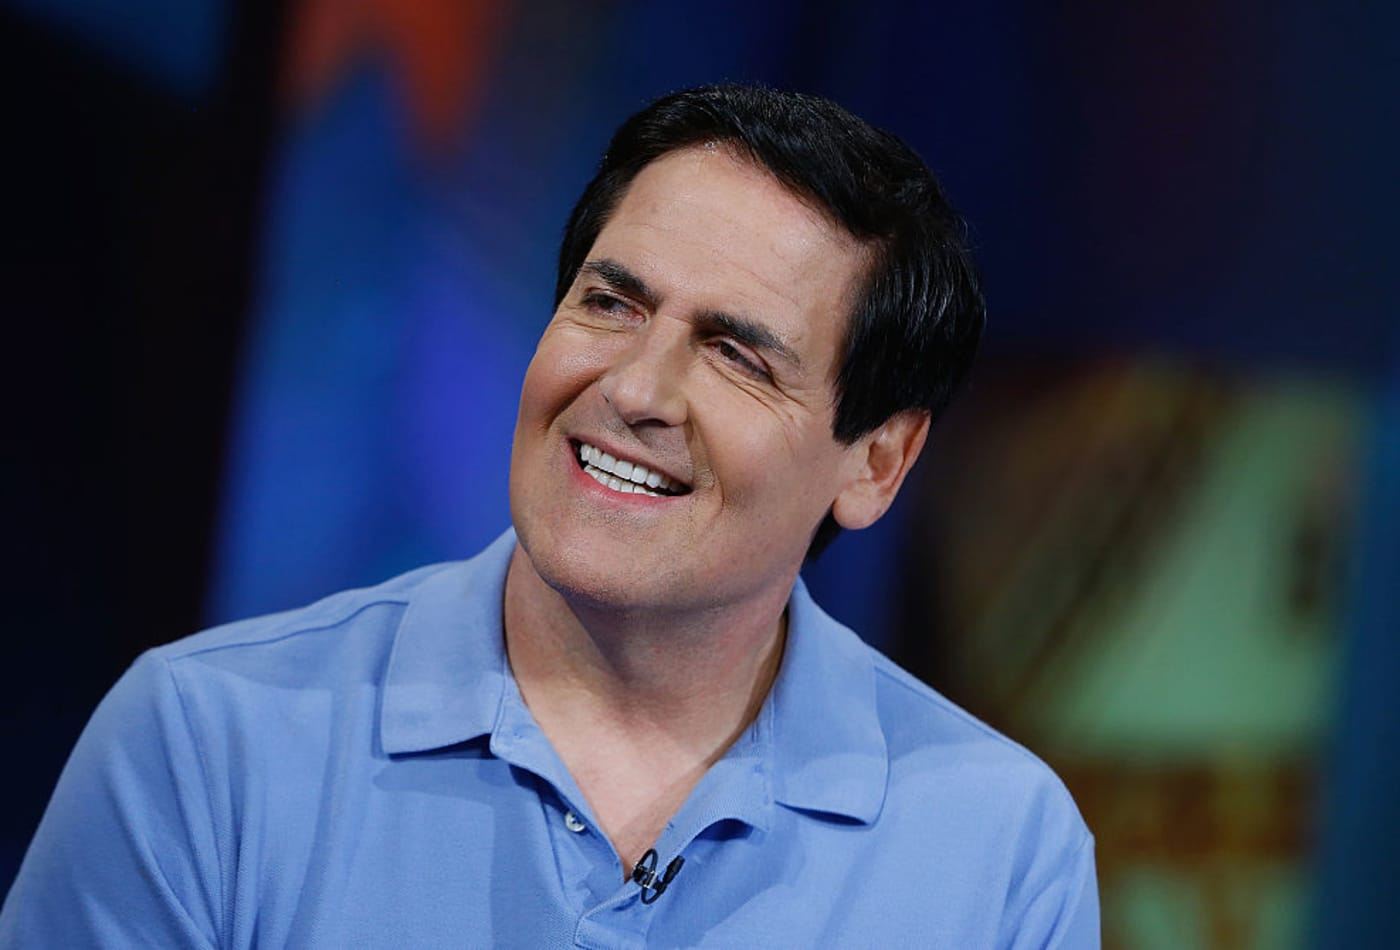 Mark Cuban Net Worth – How much is Mark Cuban worth?